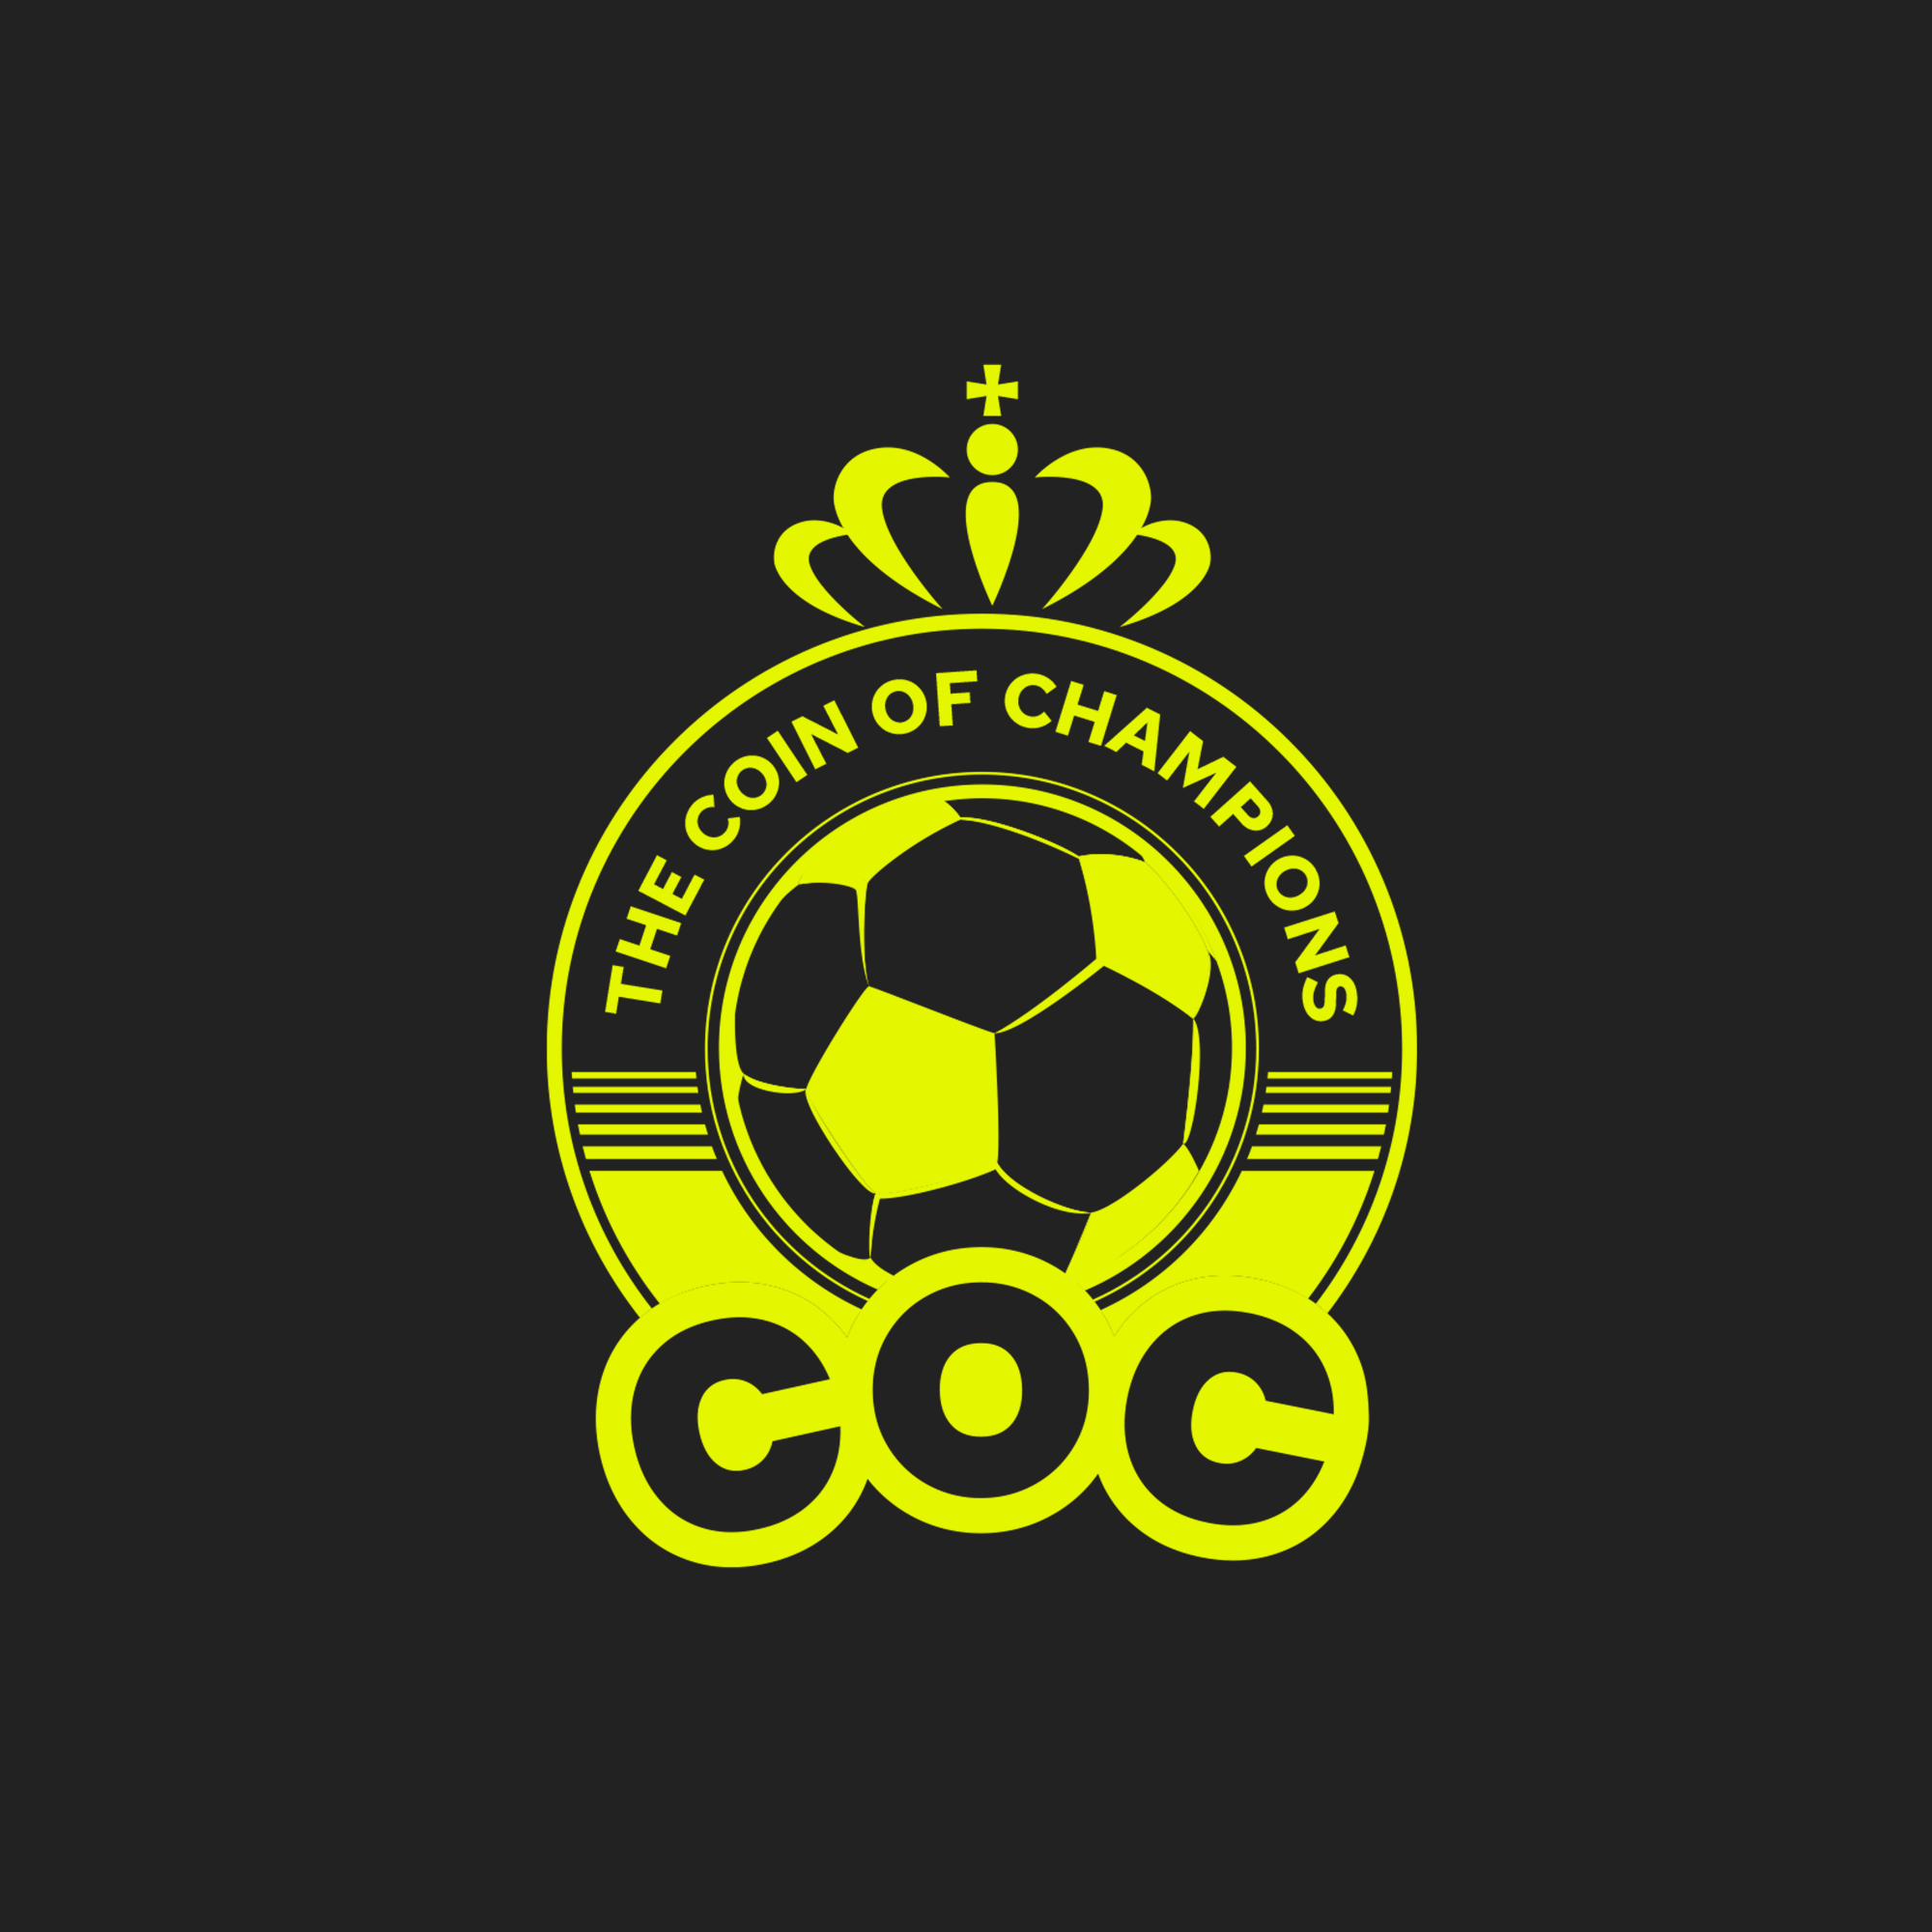 Coin Of Champions ico review & rating